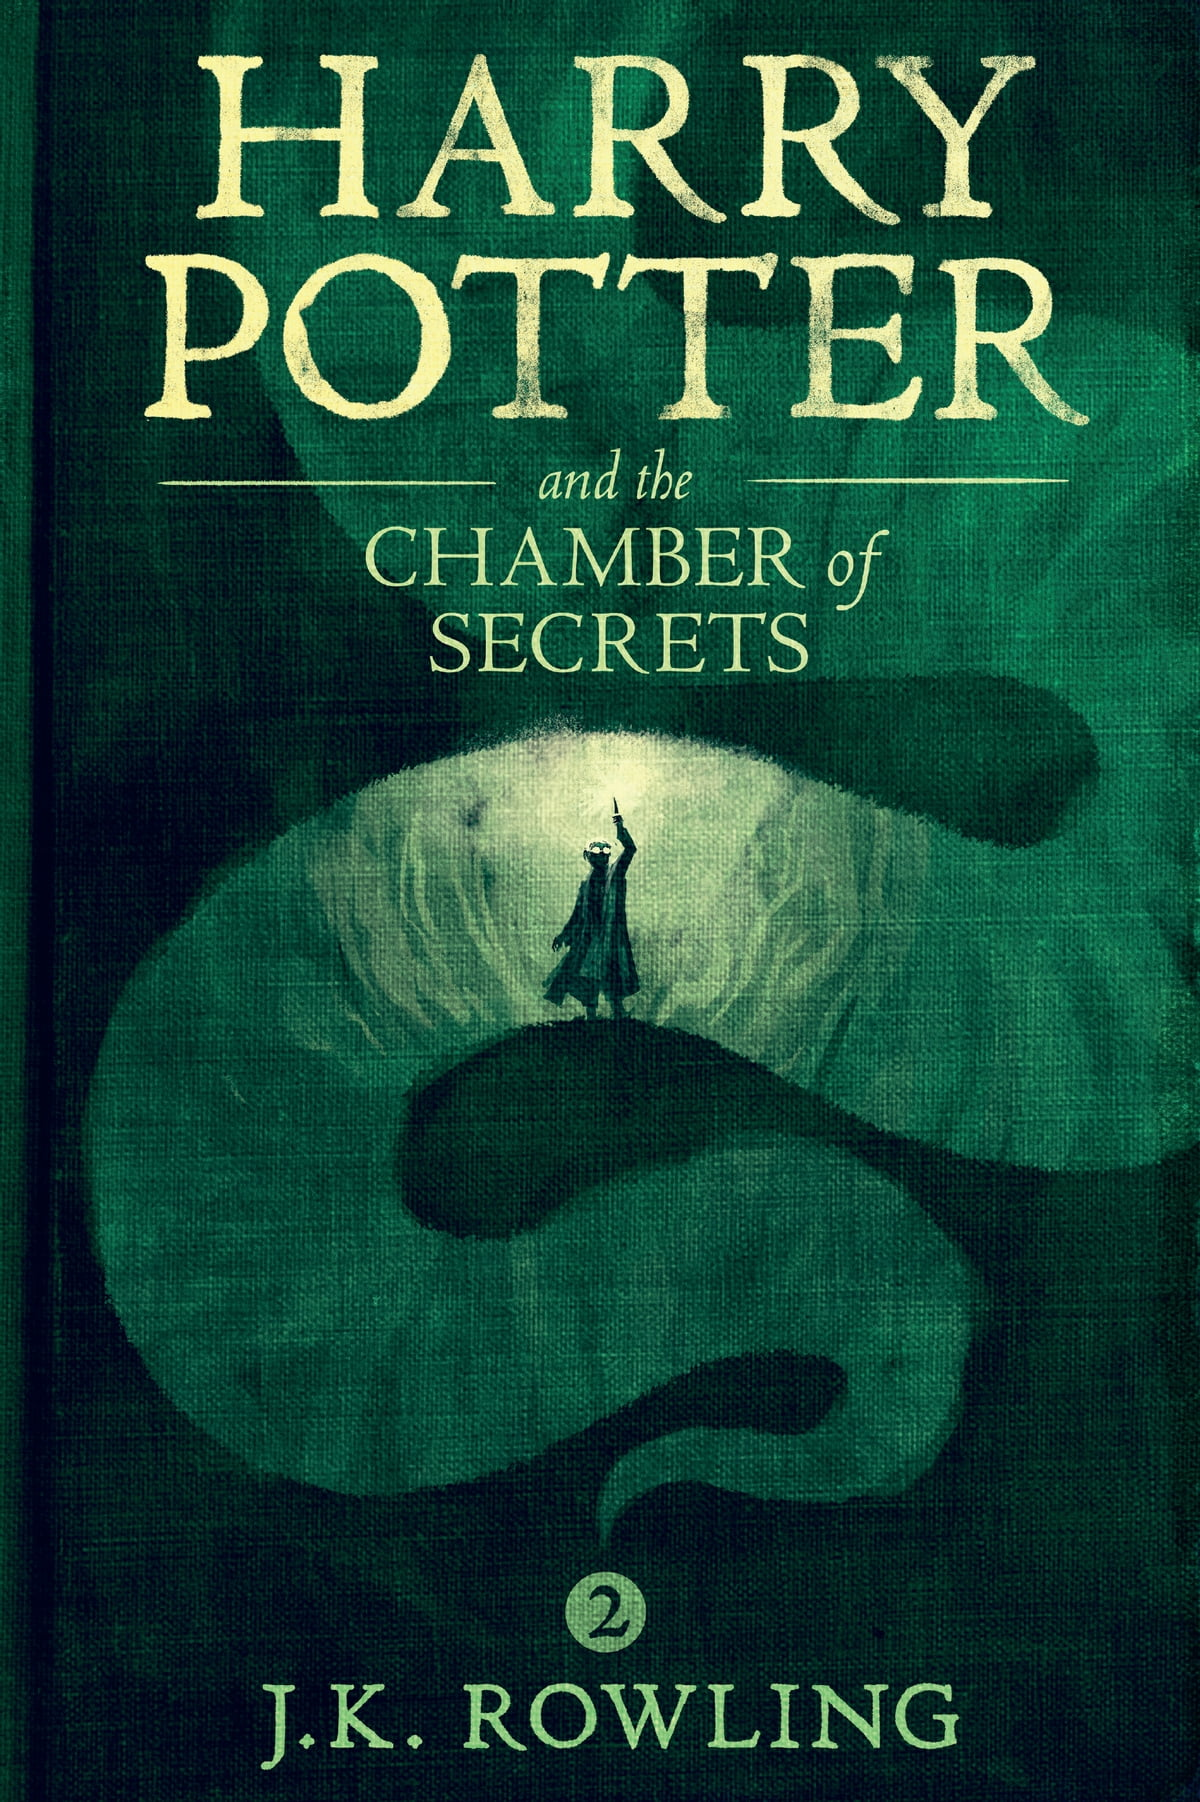 harry potter and the chamber of secrets ebook by j k rowling harry potter and the chamber of secrets ebook by j k rowling 9781781100509